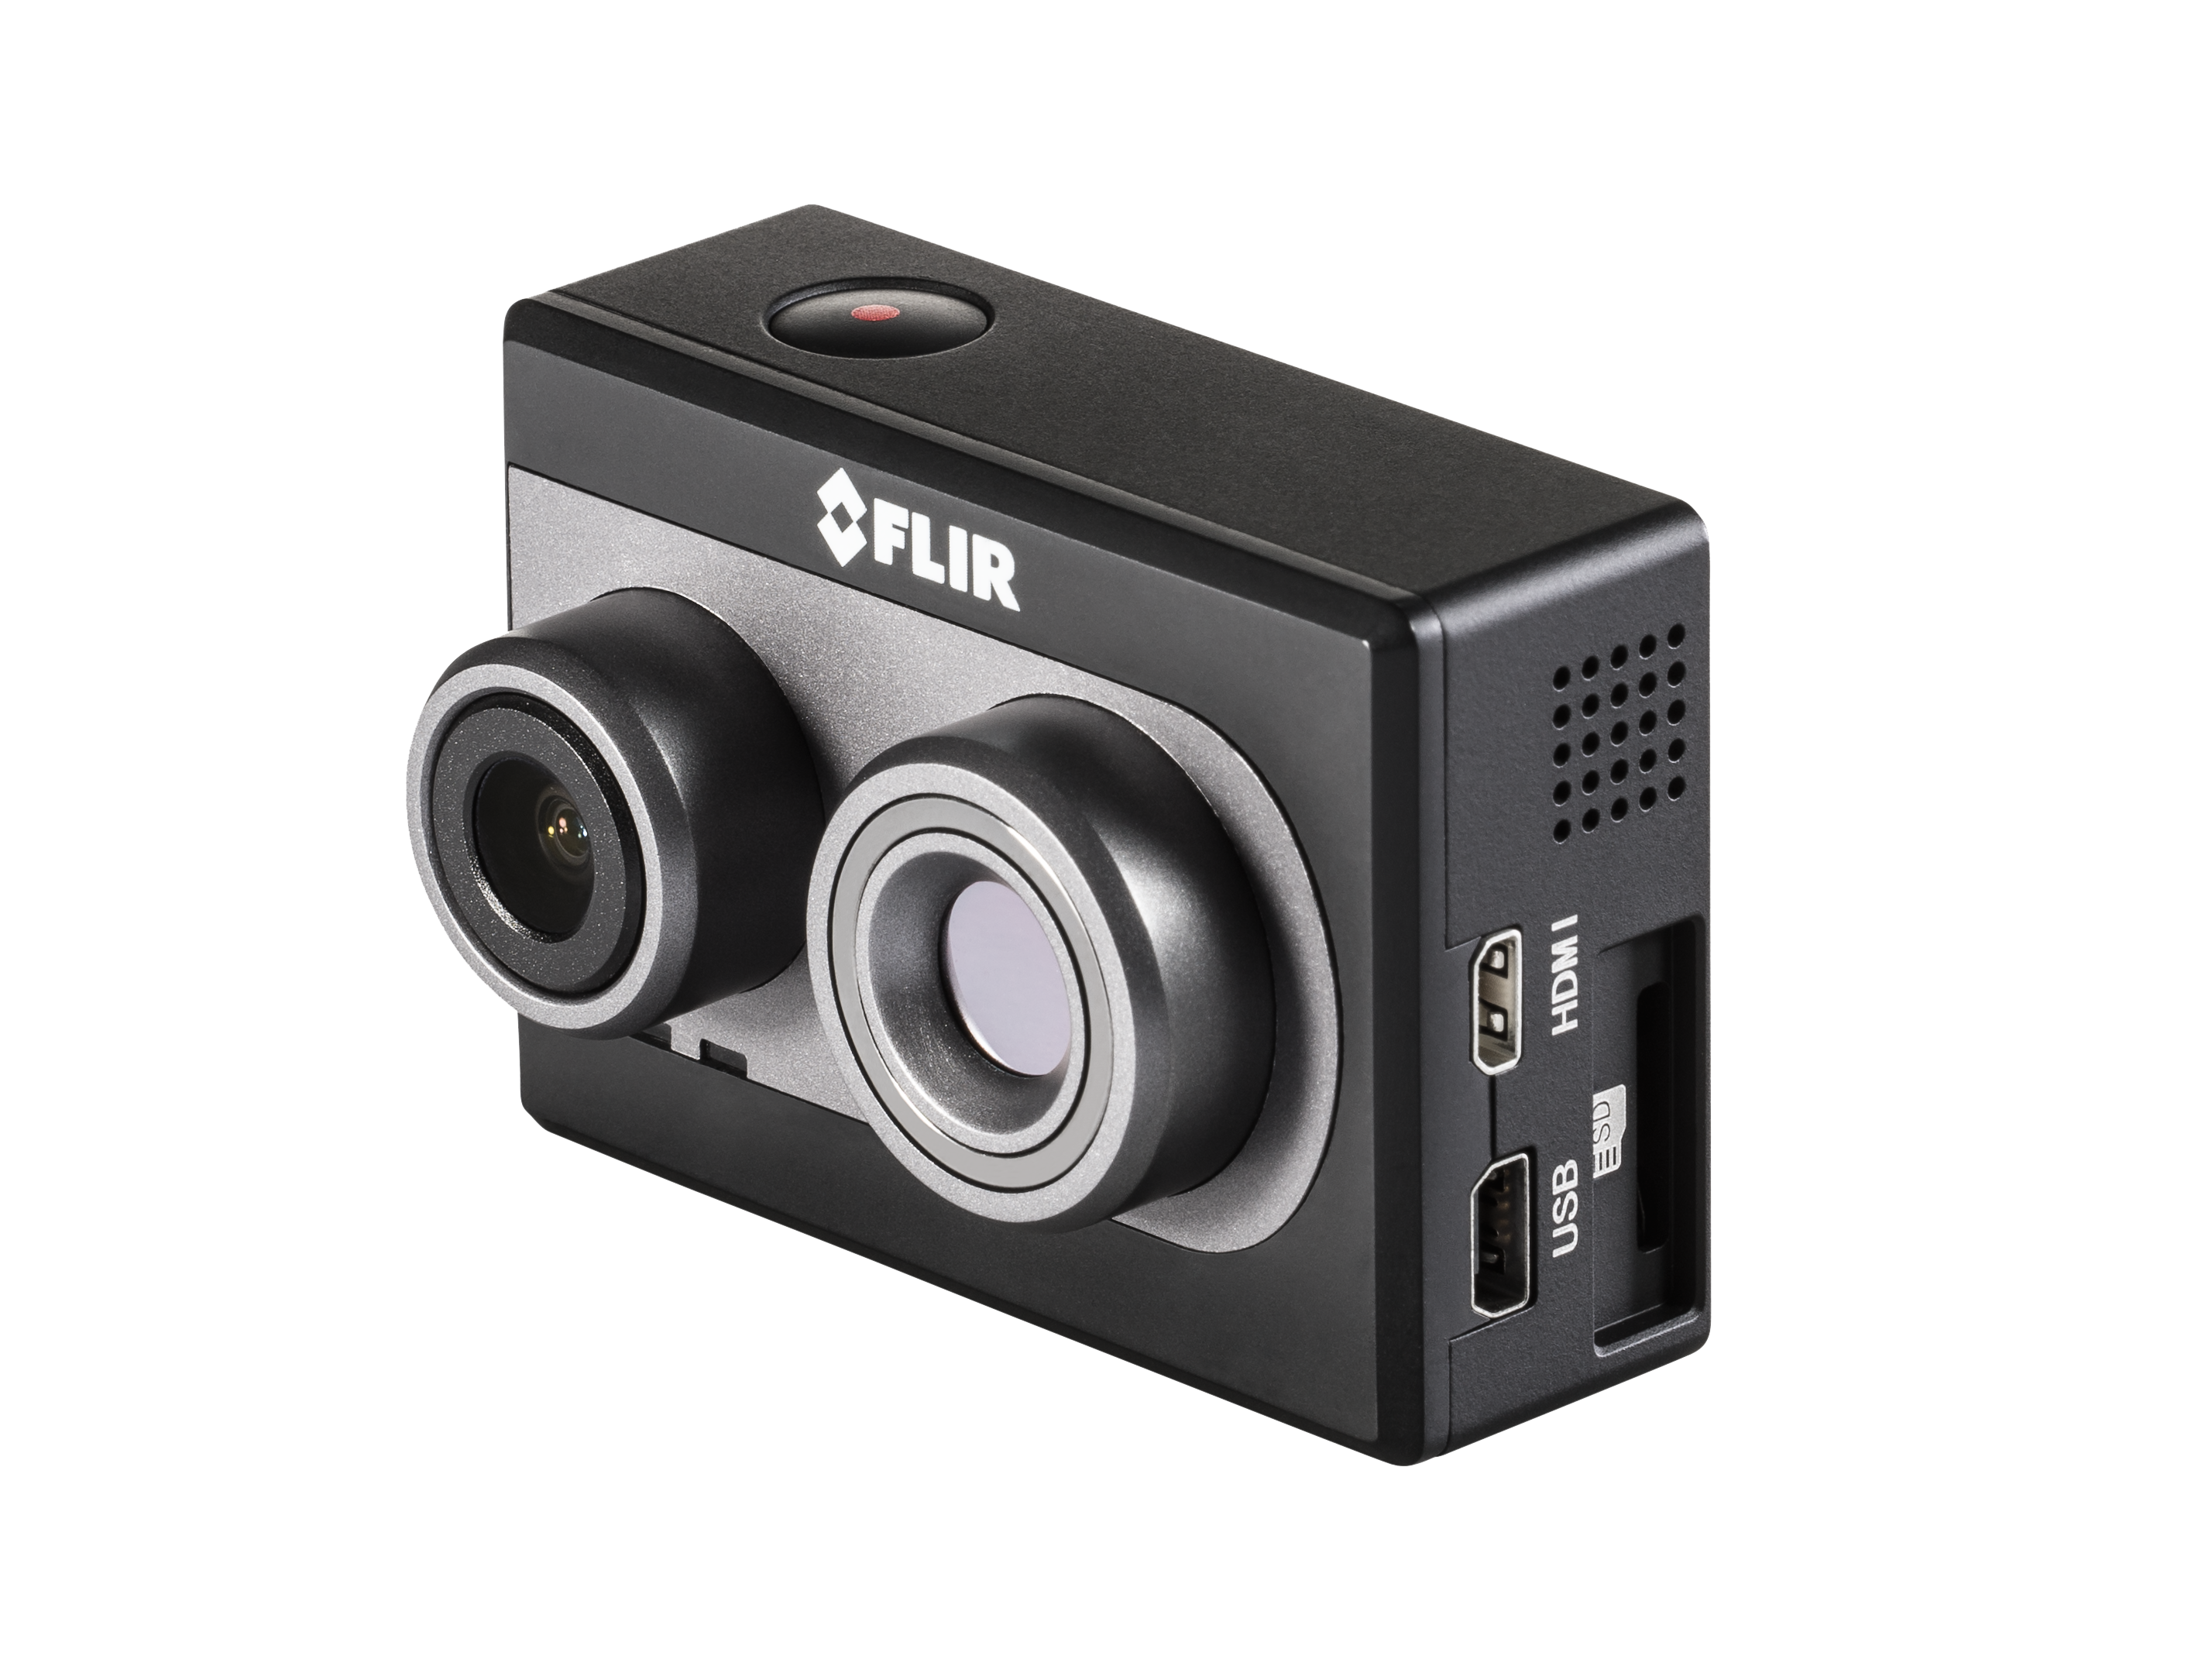 Flir's new thermal cameras are for amateurs and pros alike - The Verge